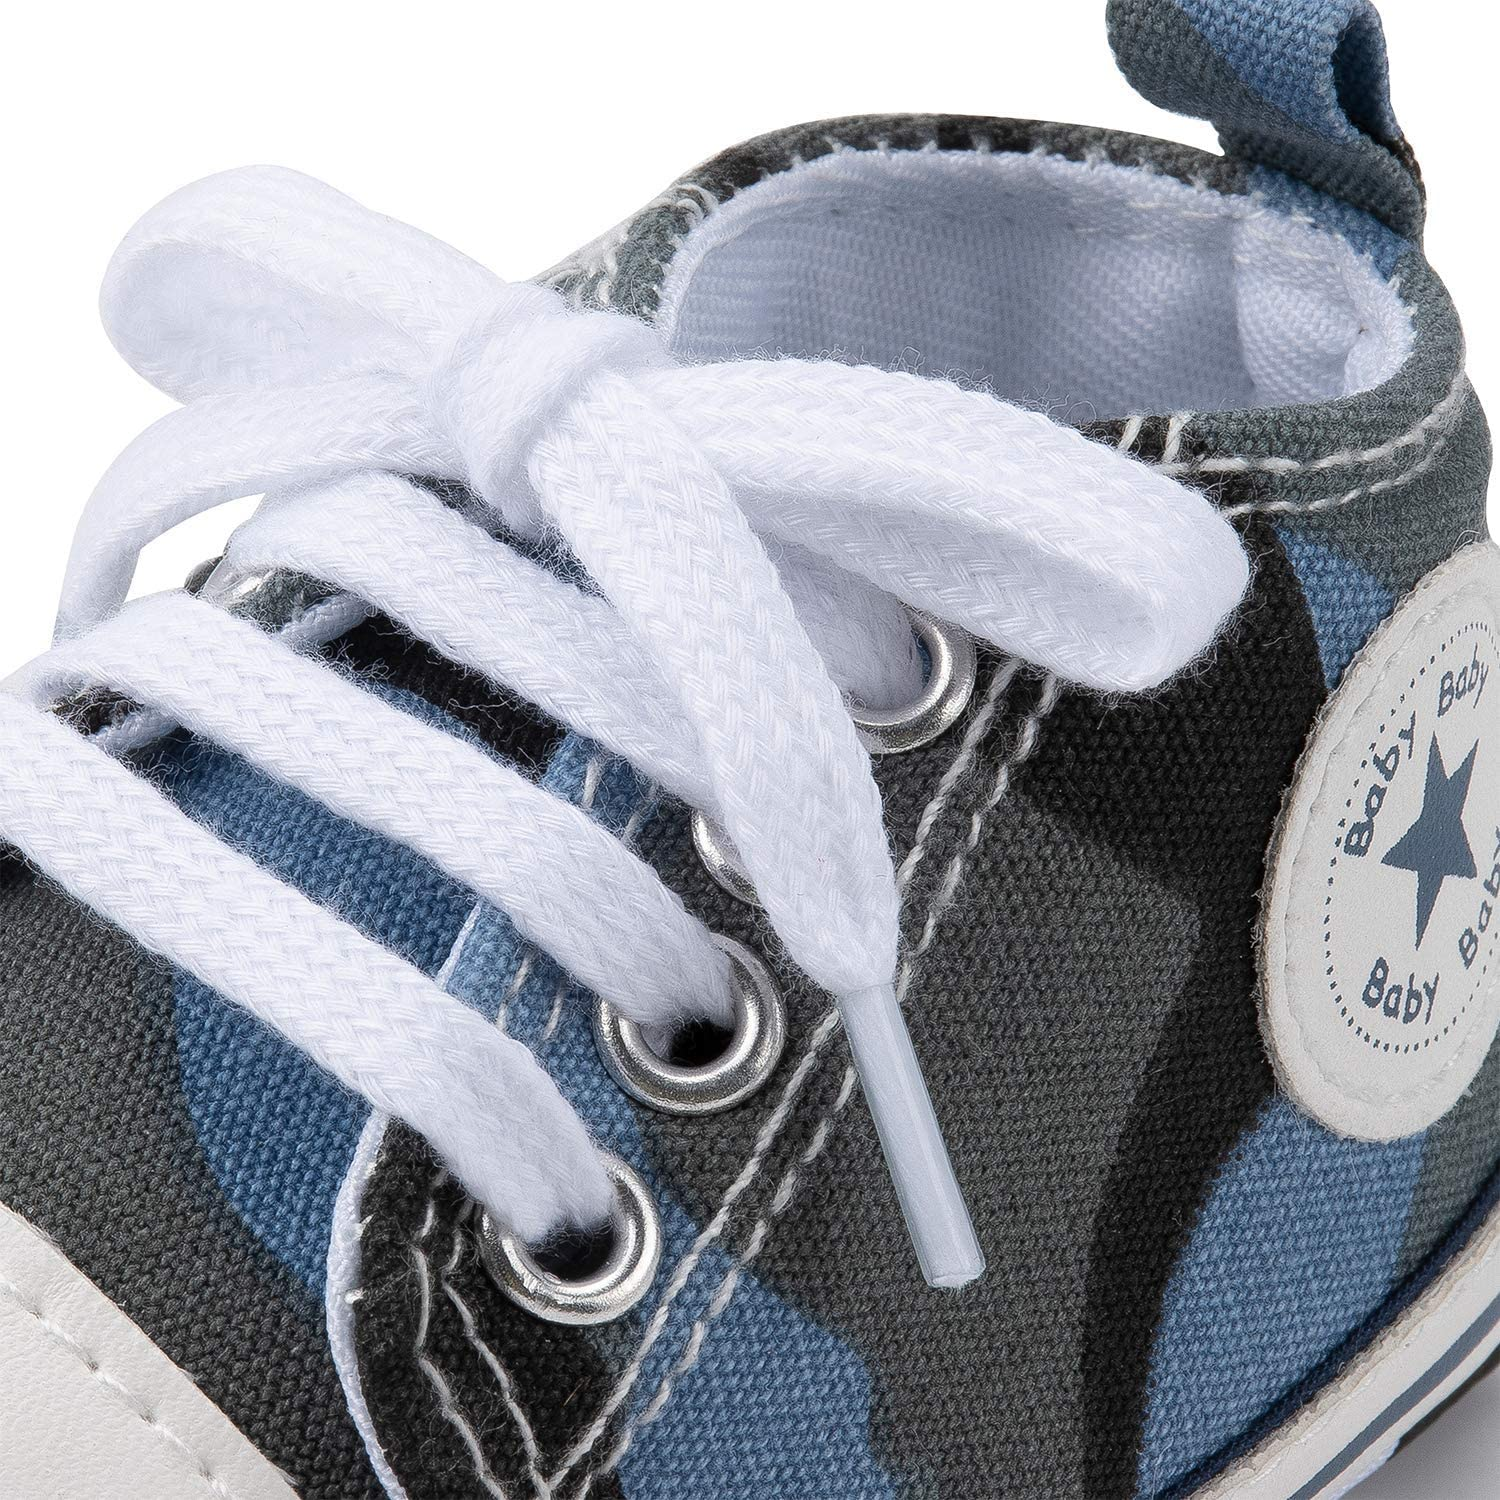 Isbasic Newborn Baby Boy Girl High Top Canvas Sneakers Toddler Non-Slip Soft Sole First Walkers Infant Denim Crib Shoes